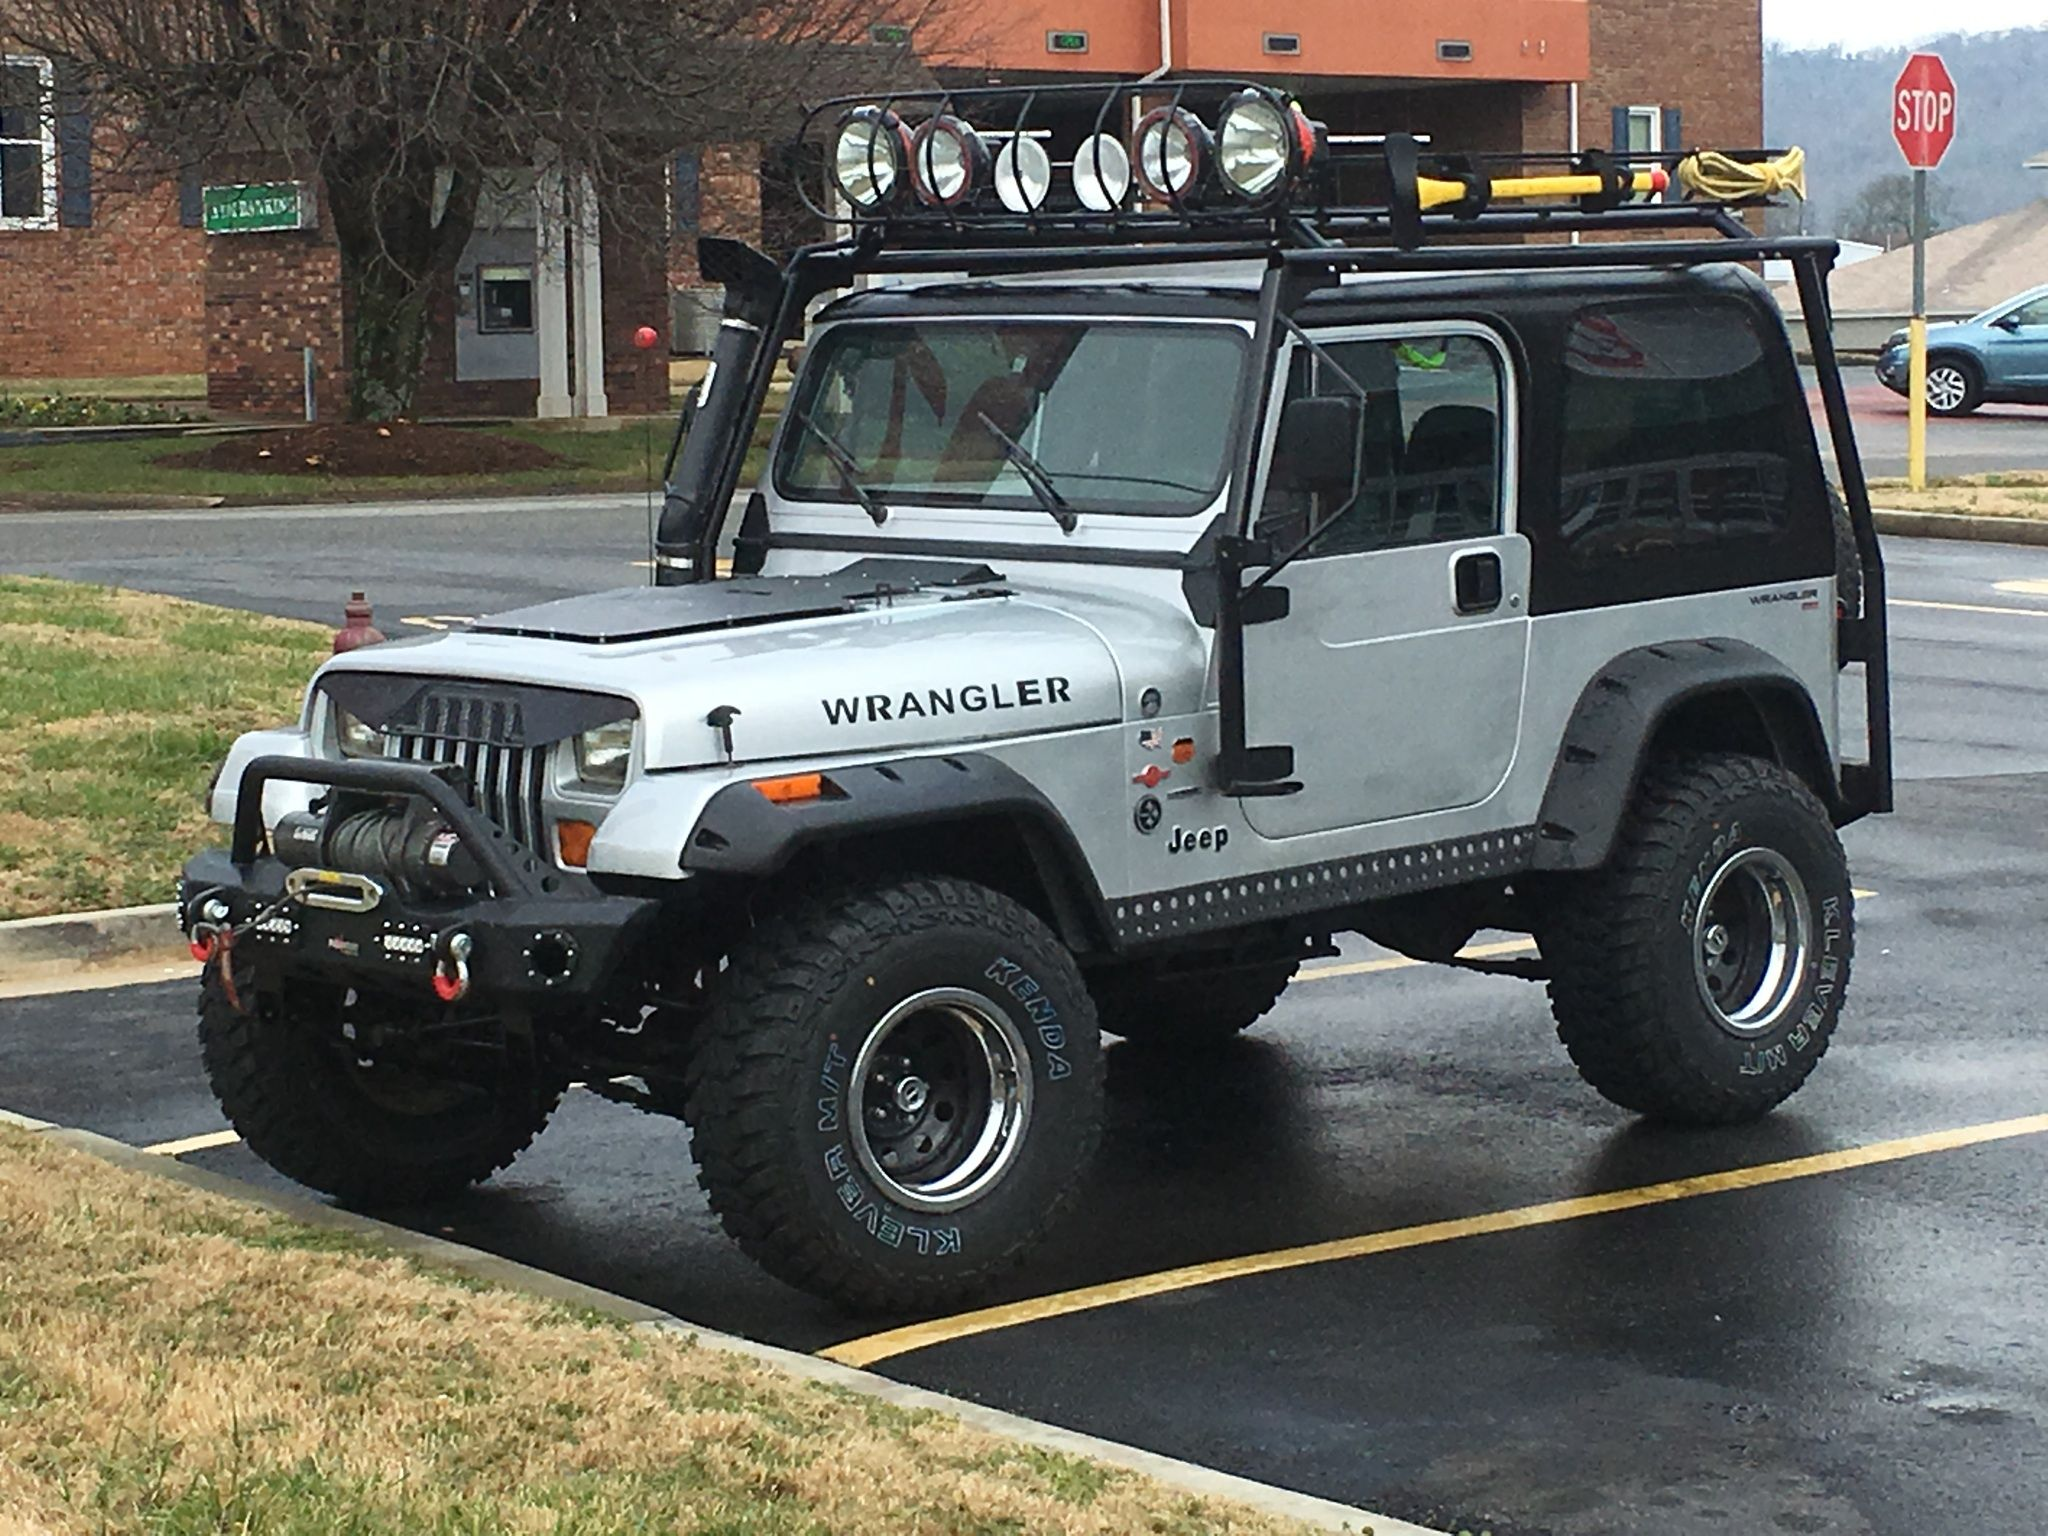 1992 Jeep Wrangler 4 0 Ho 4 1 2 Rough Country Lift Shackle Reversal 33x12 50 S Expedetion Rack And Spare Tire Carr Jeep Yj Jeep Wrangler Jeep Wrangler Yj